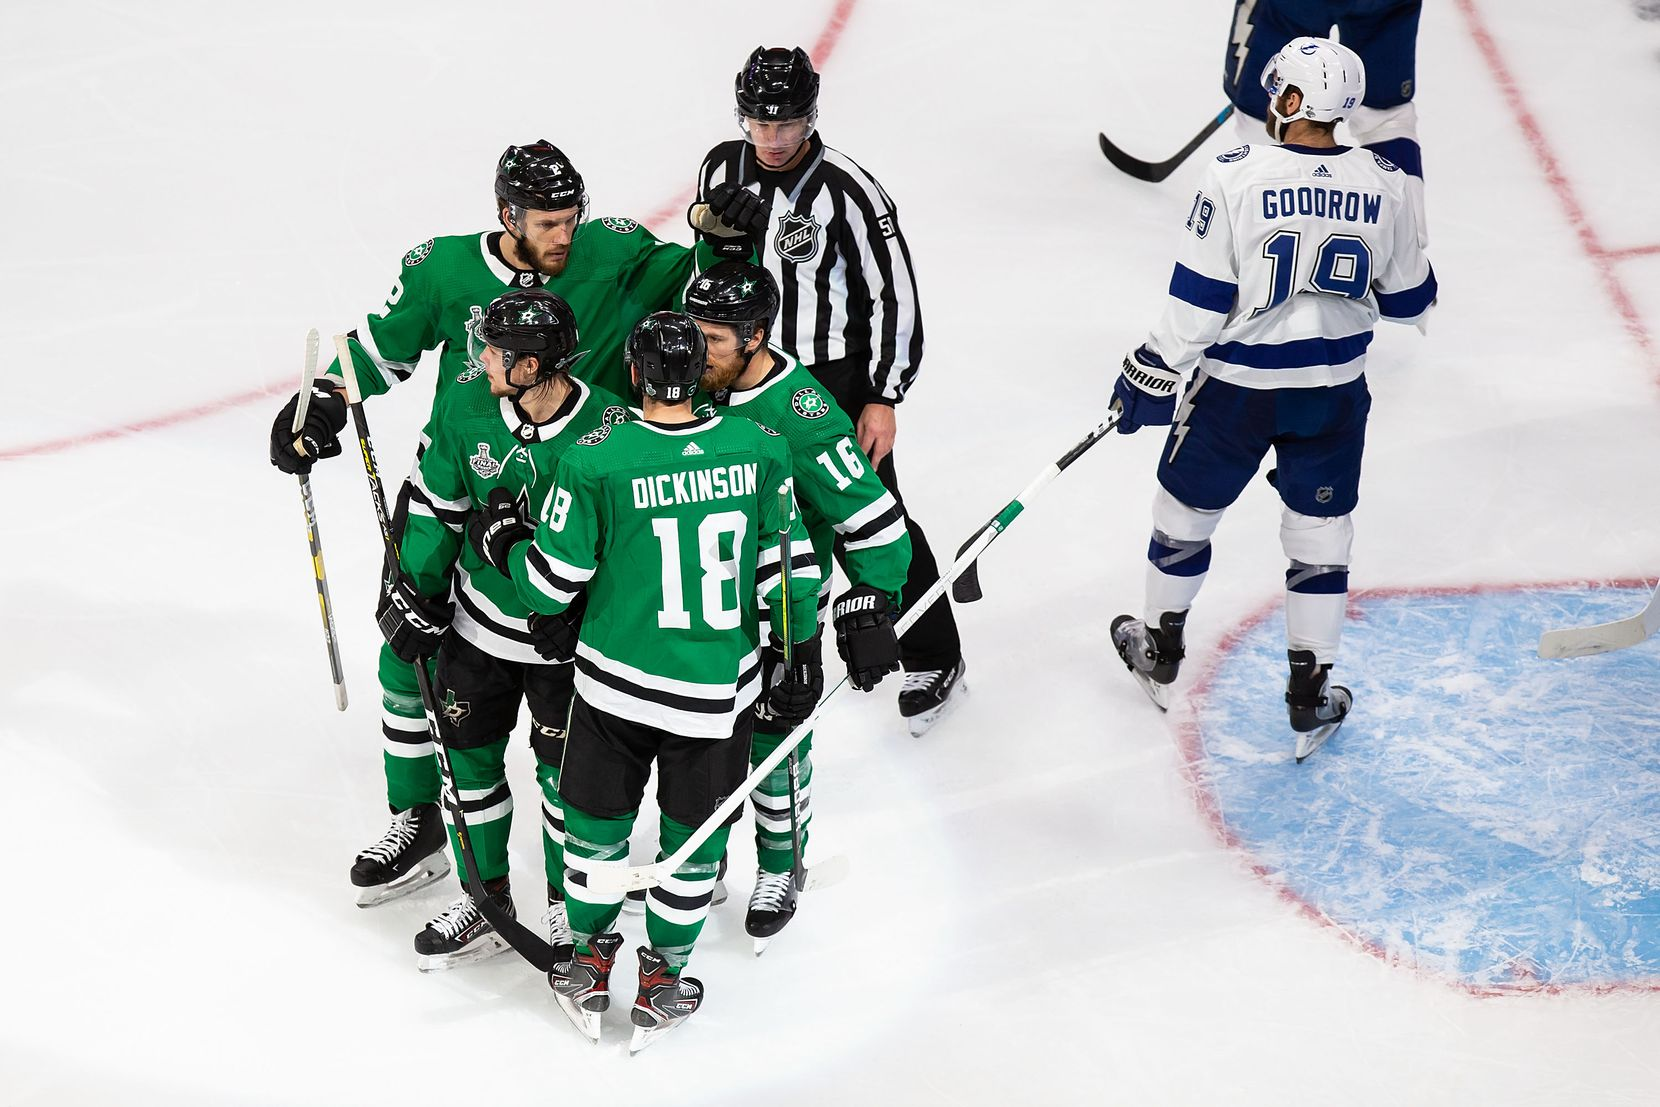 Jamie Oleksiak (2), Miro Heiskanen (4), Jason Dickinson (18) and Joe Pavelski (16) of the Dallas Stars celebrate Heiskanen's goal against the Tampa Bay Lightning during Game Three of the Stanley Cup Final at Rogers Place in Edmonton, Alberta, Canada on Wednesday, September 23, 2020. (Codie McLachlan/Special Contributor)